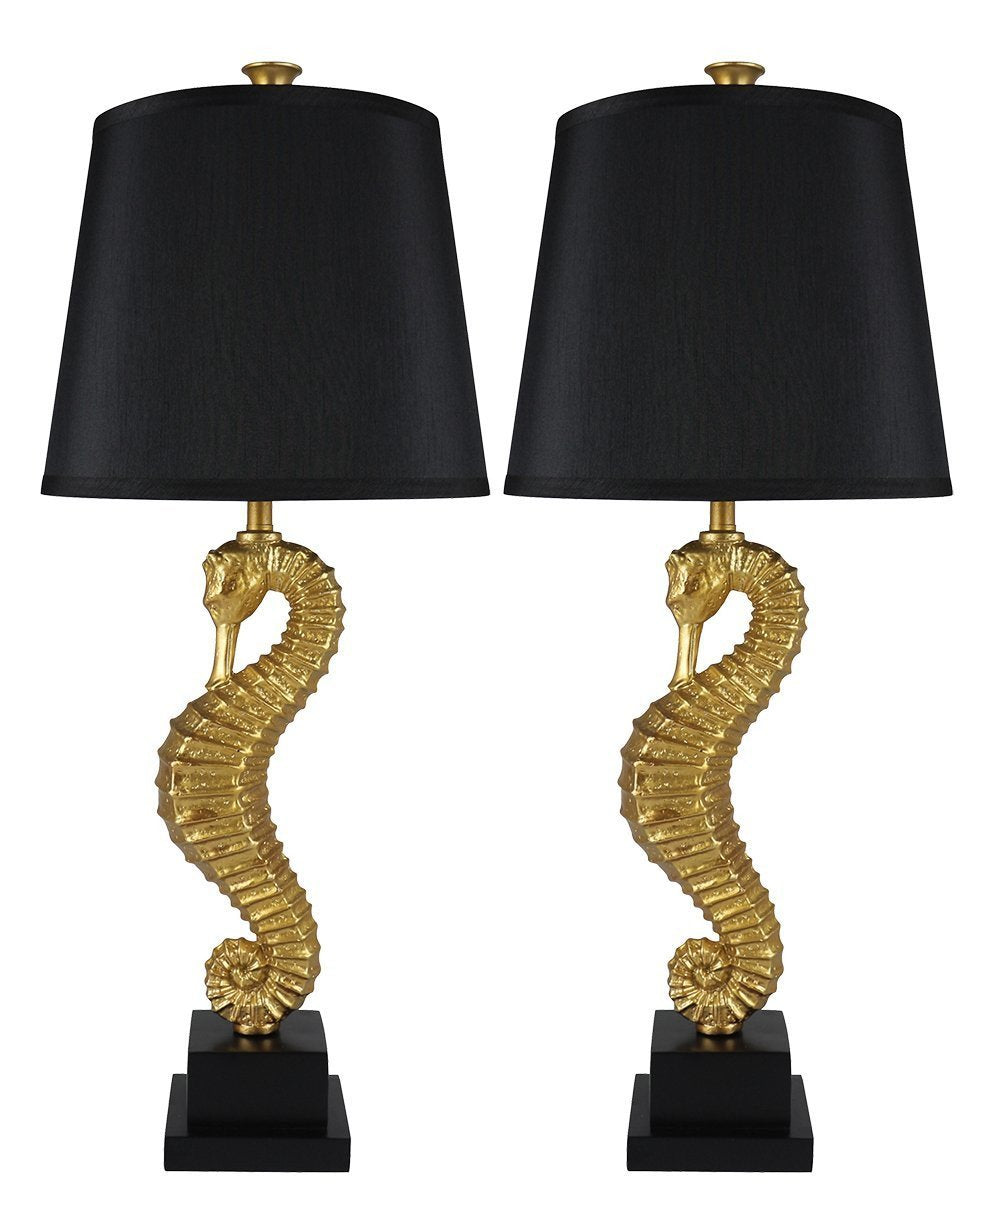 Set of 2 seahorse table lamps urbanest set of 2 seahorse table lamps aloadofball Gallery